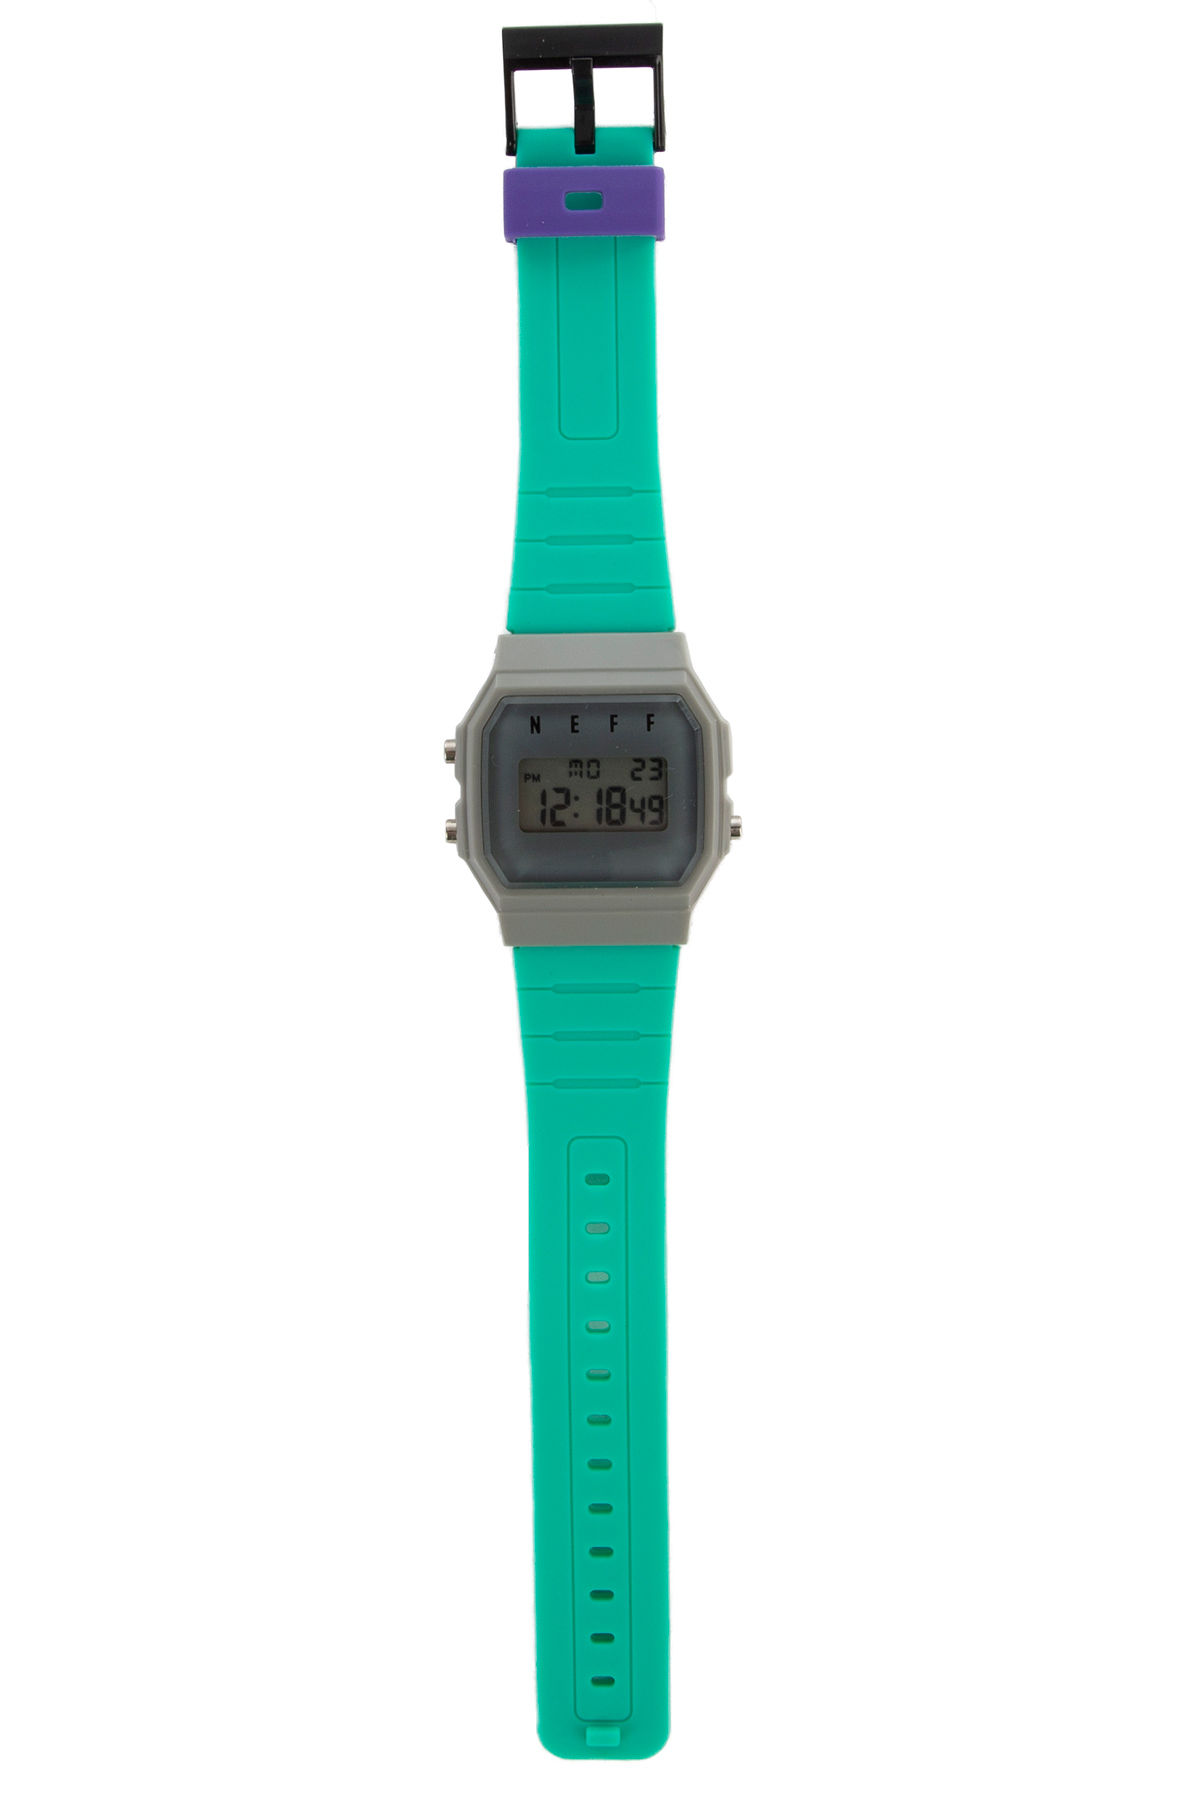 Image of The Flava XL Over sized Digital Watch In Teal